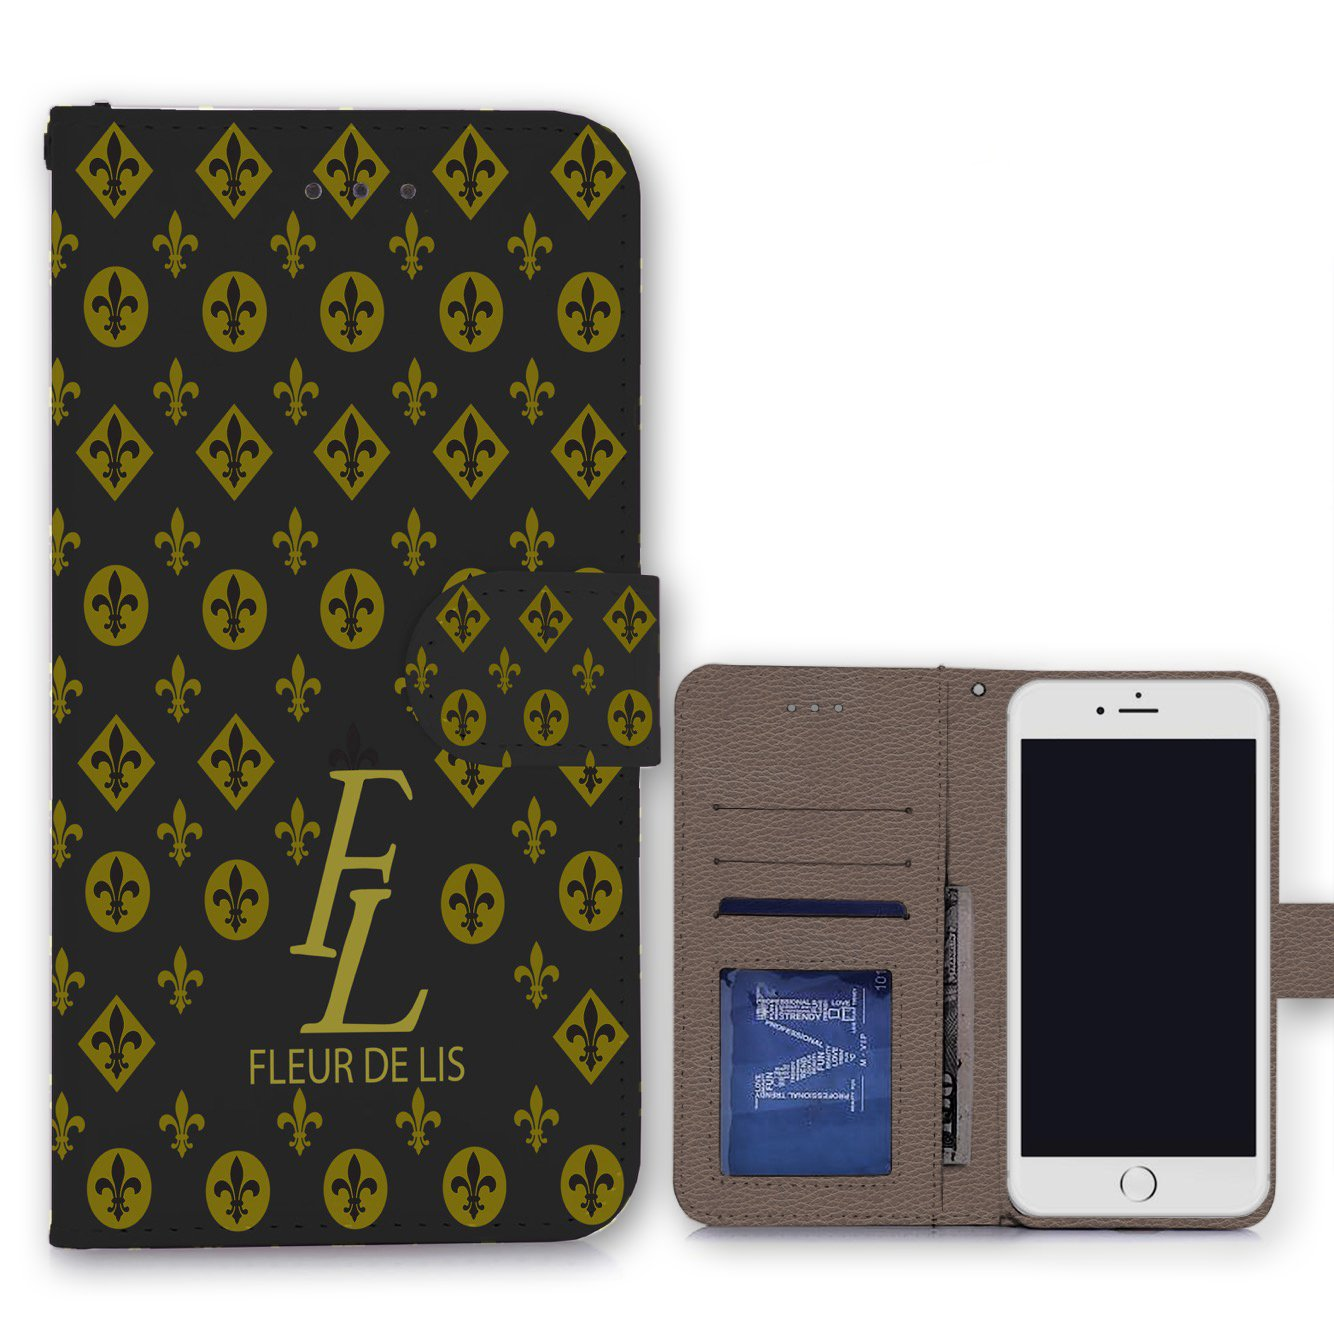 Amazon.com: New Orleans Fleur-de-lis iPhone 8 Plus Wallet Clutch ...